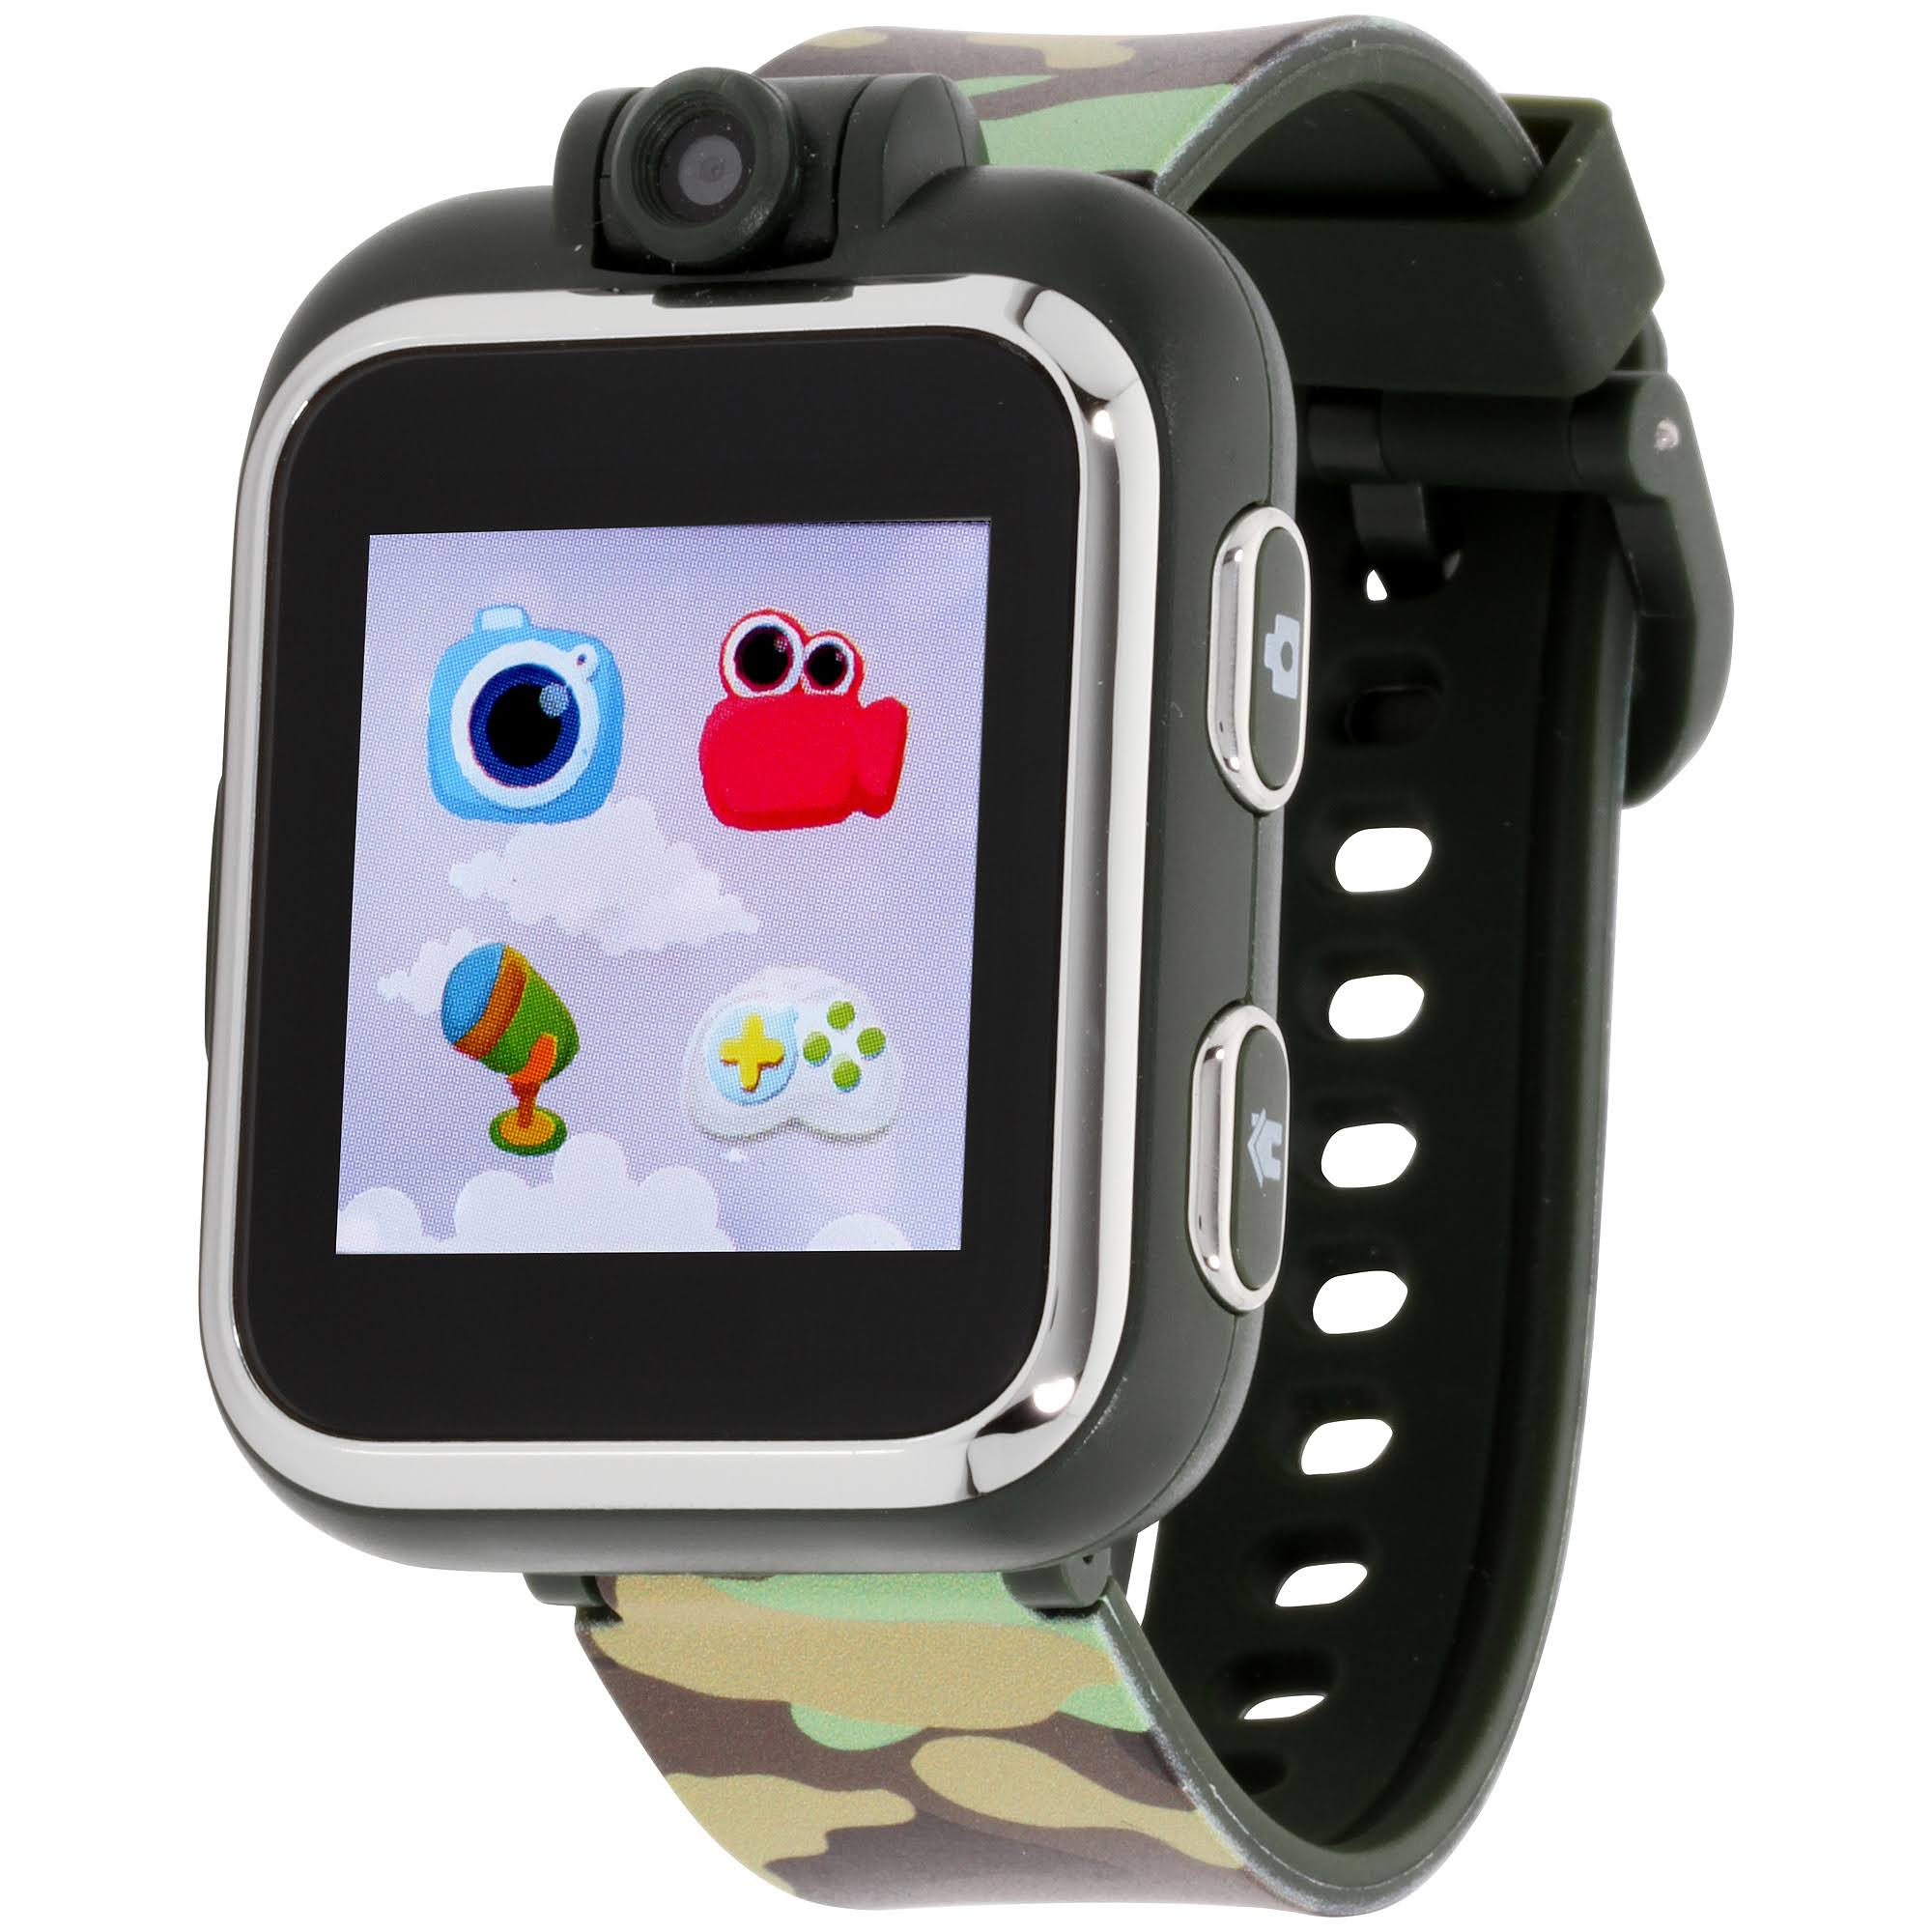 iTouch Play Zoom Kids Touch Screen Smartwatch - Camouflage